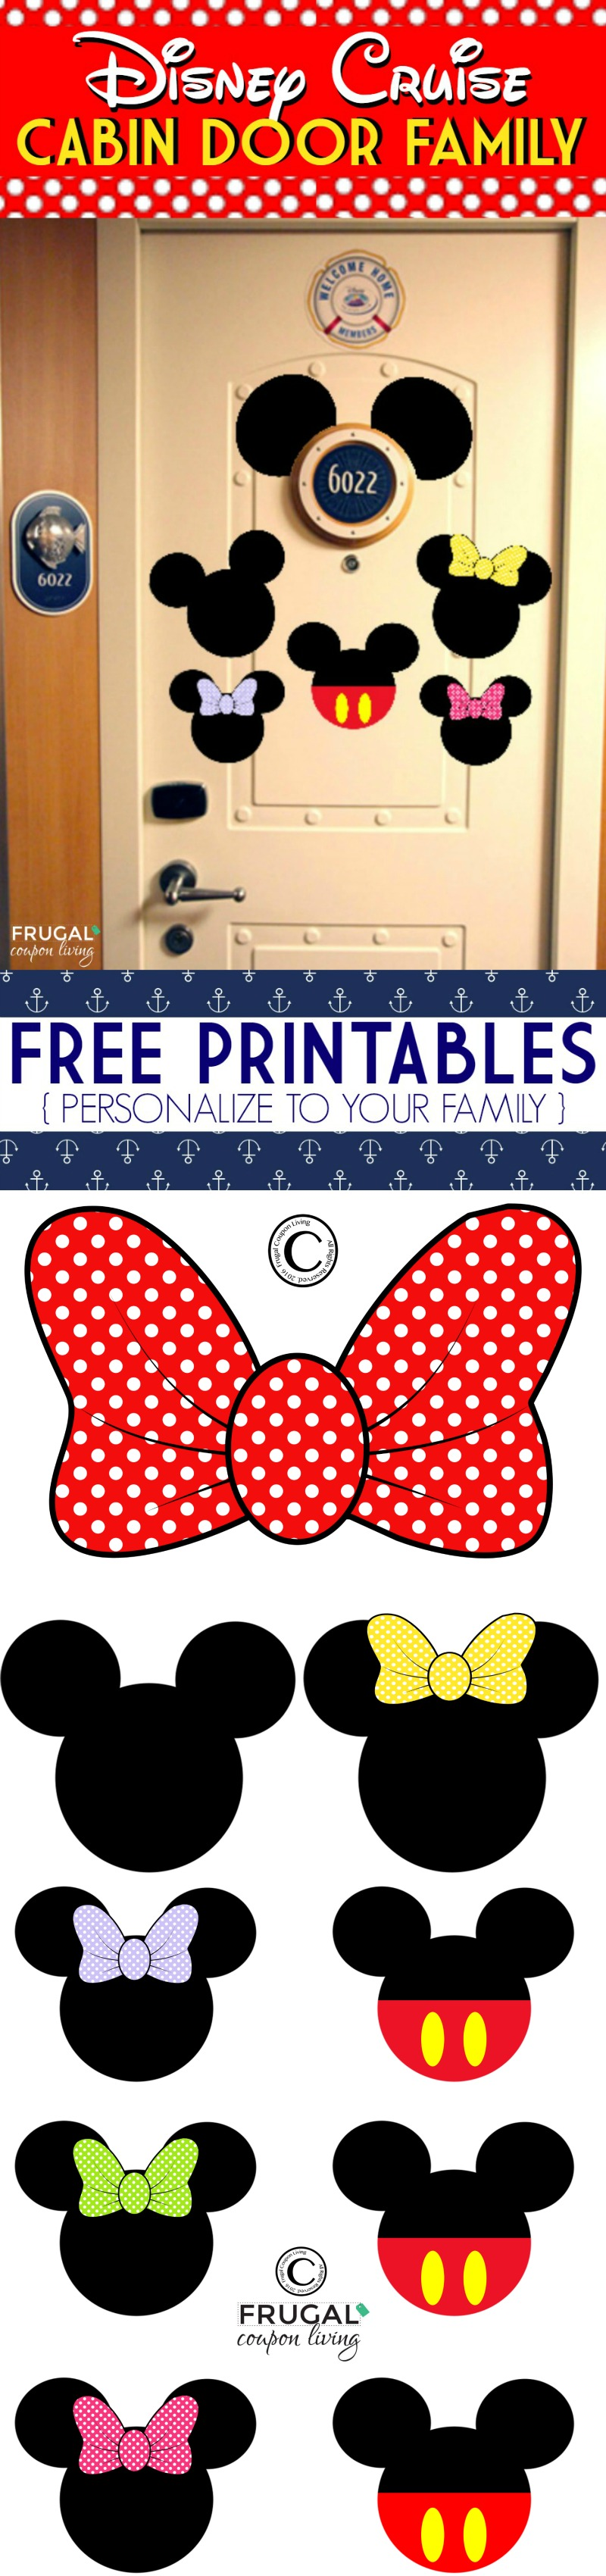 Disney-Cruise-Door-Printable-long-Frugal-coupon-Living